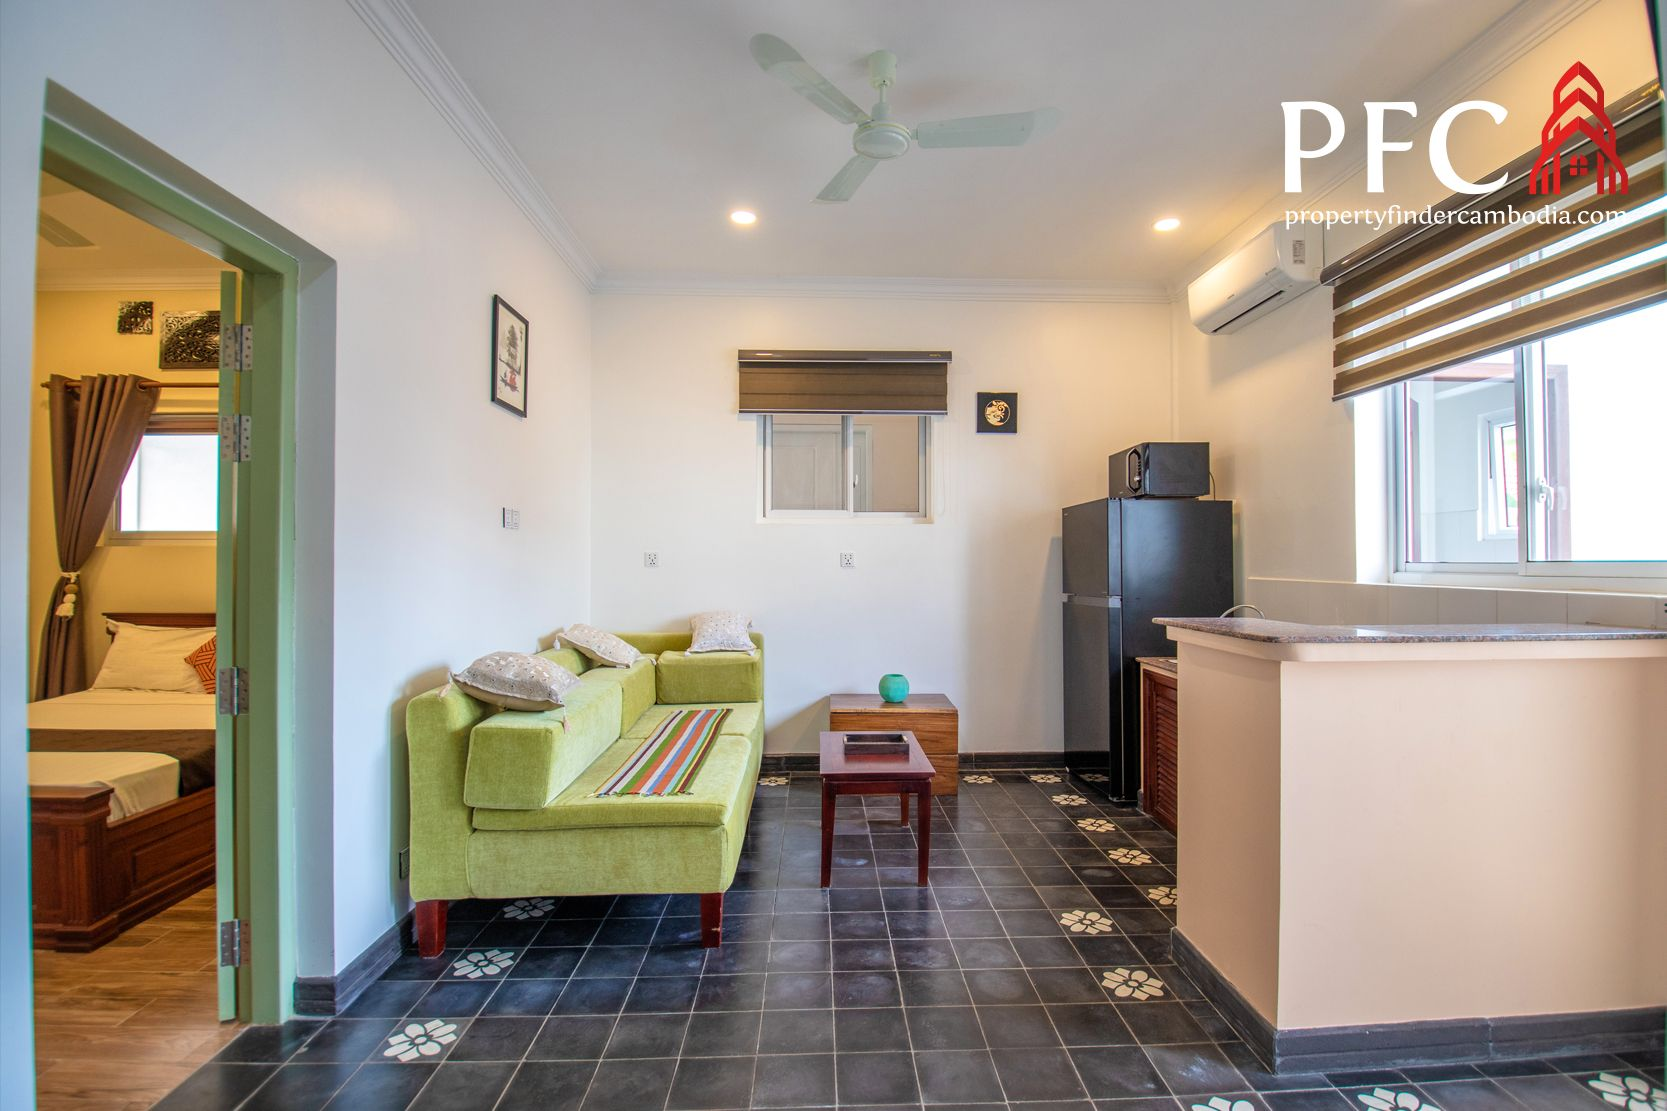 1 Bedroom Apartment For Rent In Siem Reap 1 Bedroom Apartment Apartments For Rent Apartment Design